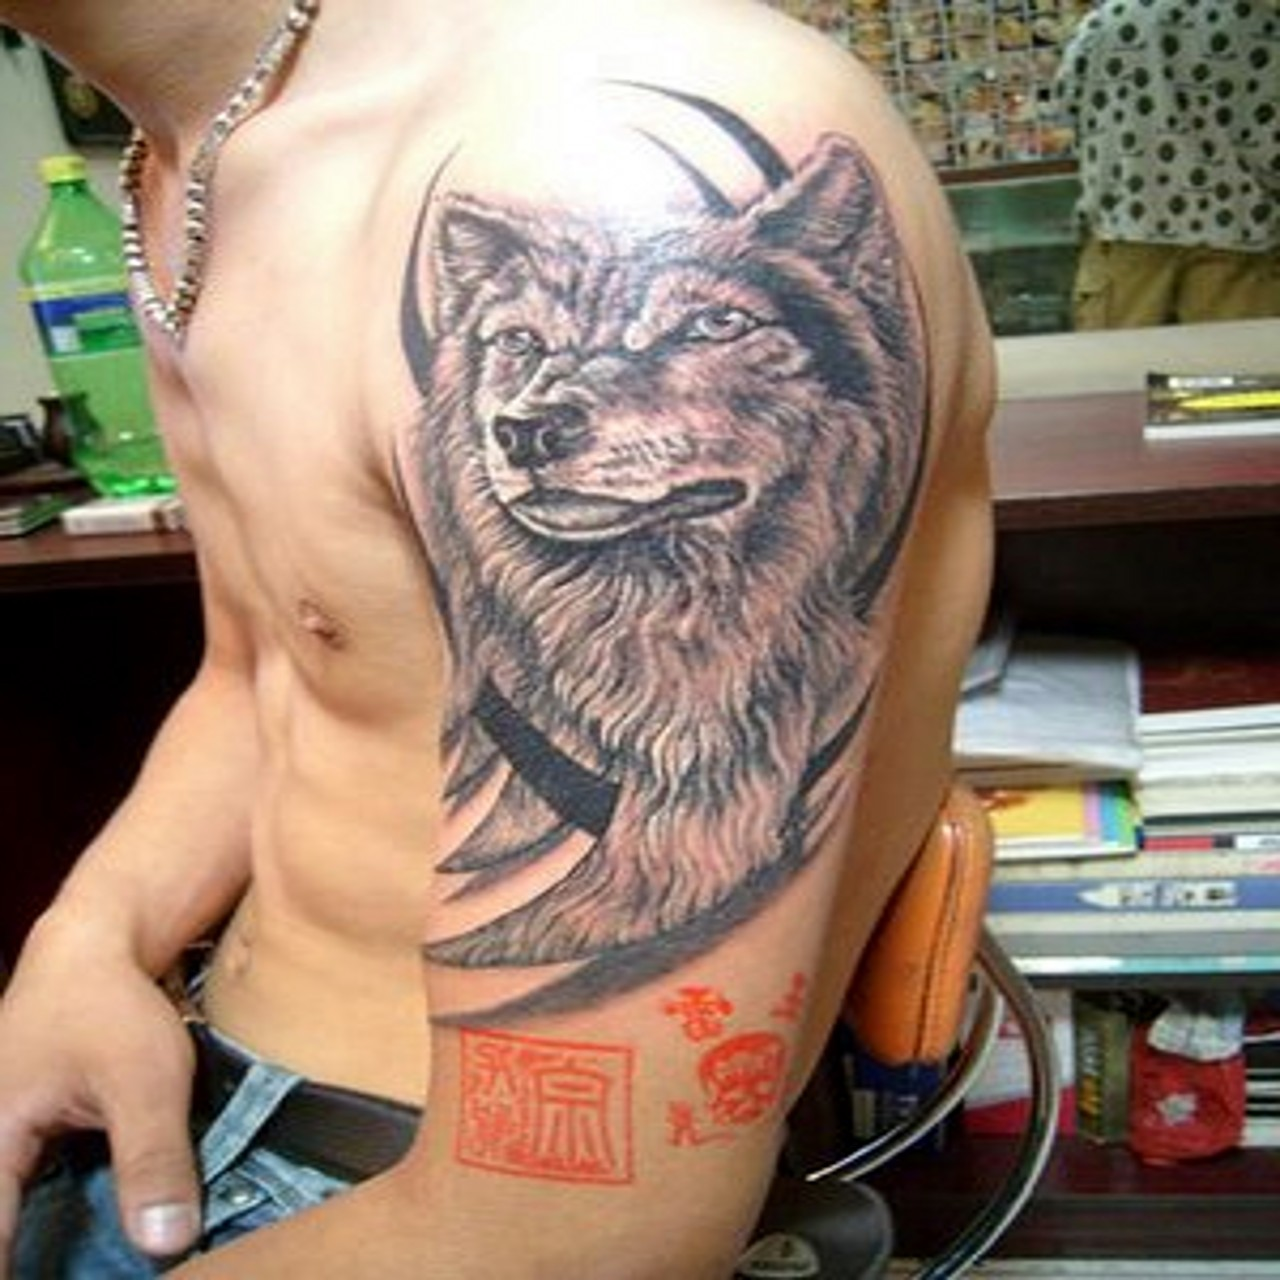 Indian with eagle and wolf tattoo on shoulder tattooimages biz - Wolf Tattoos For Shoulder